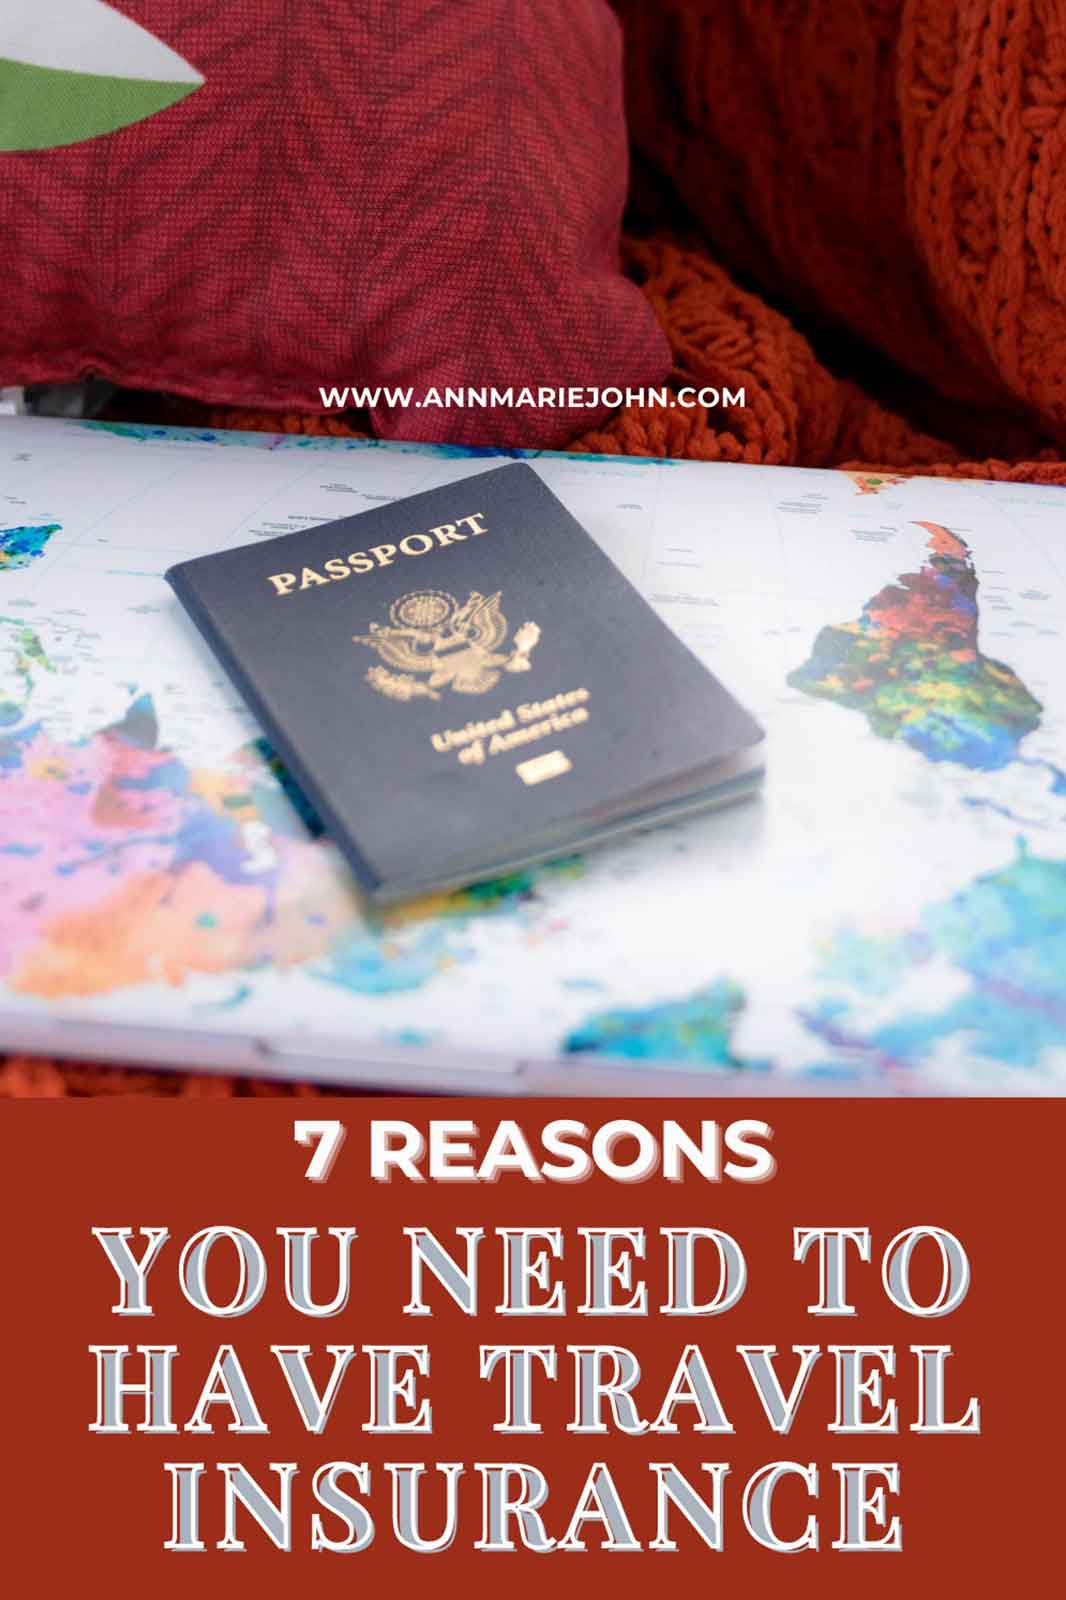 Reasons Why You Need To Have Travel Insurance